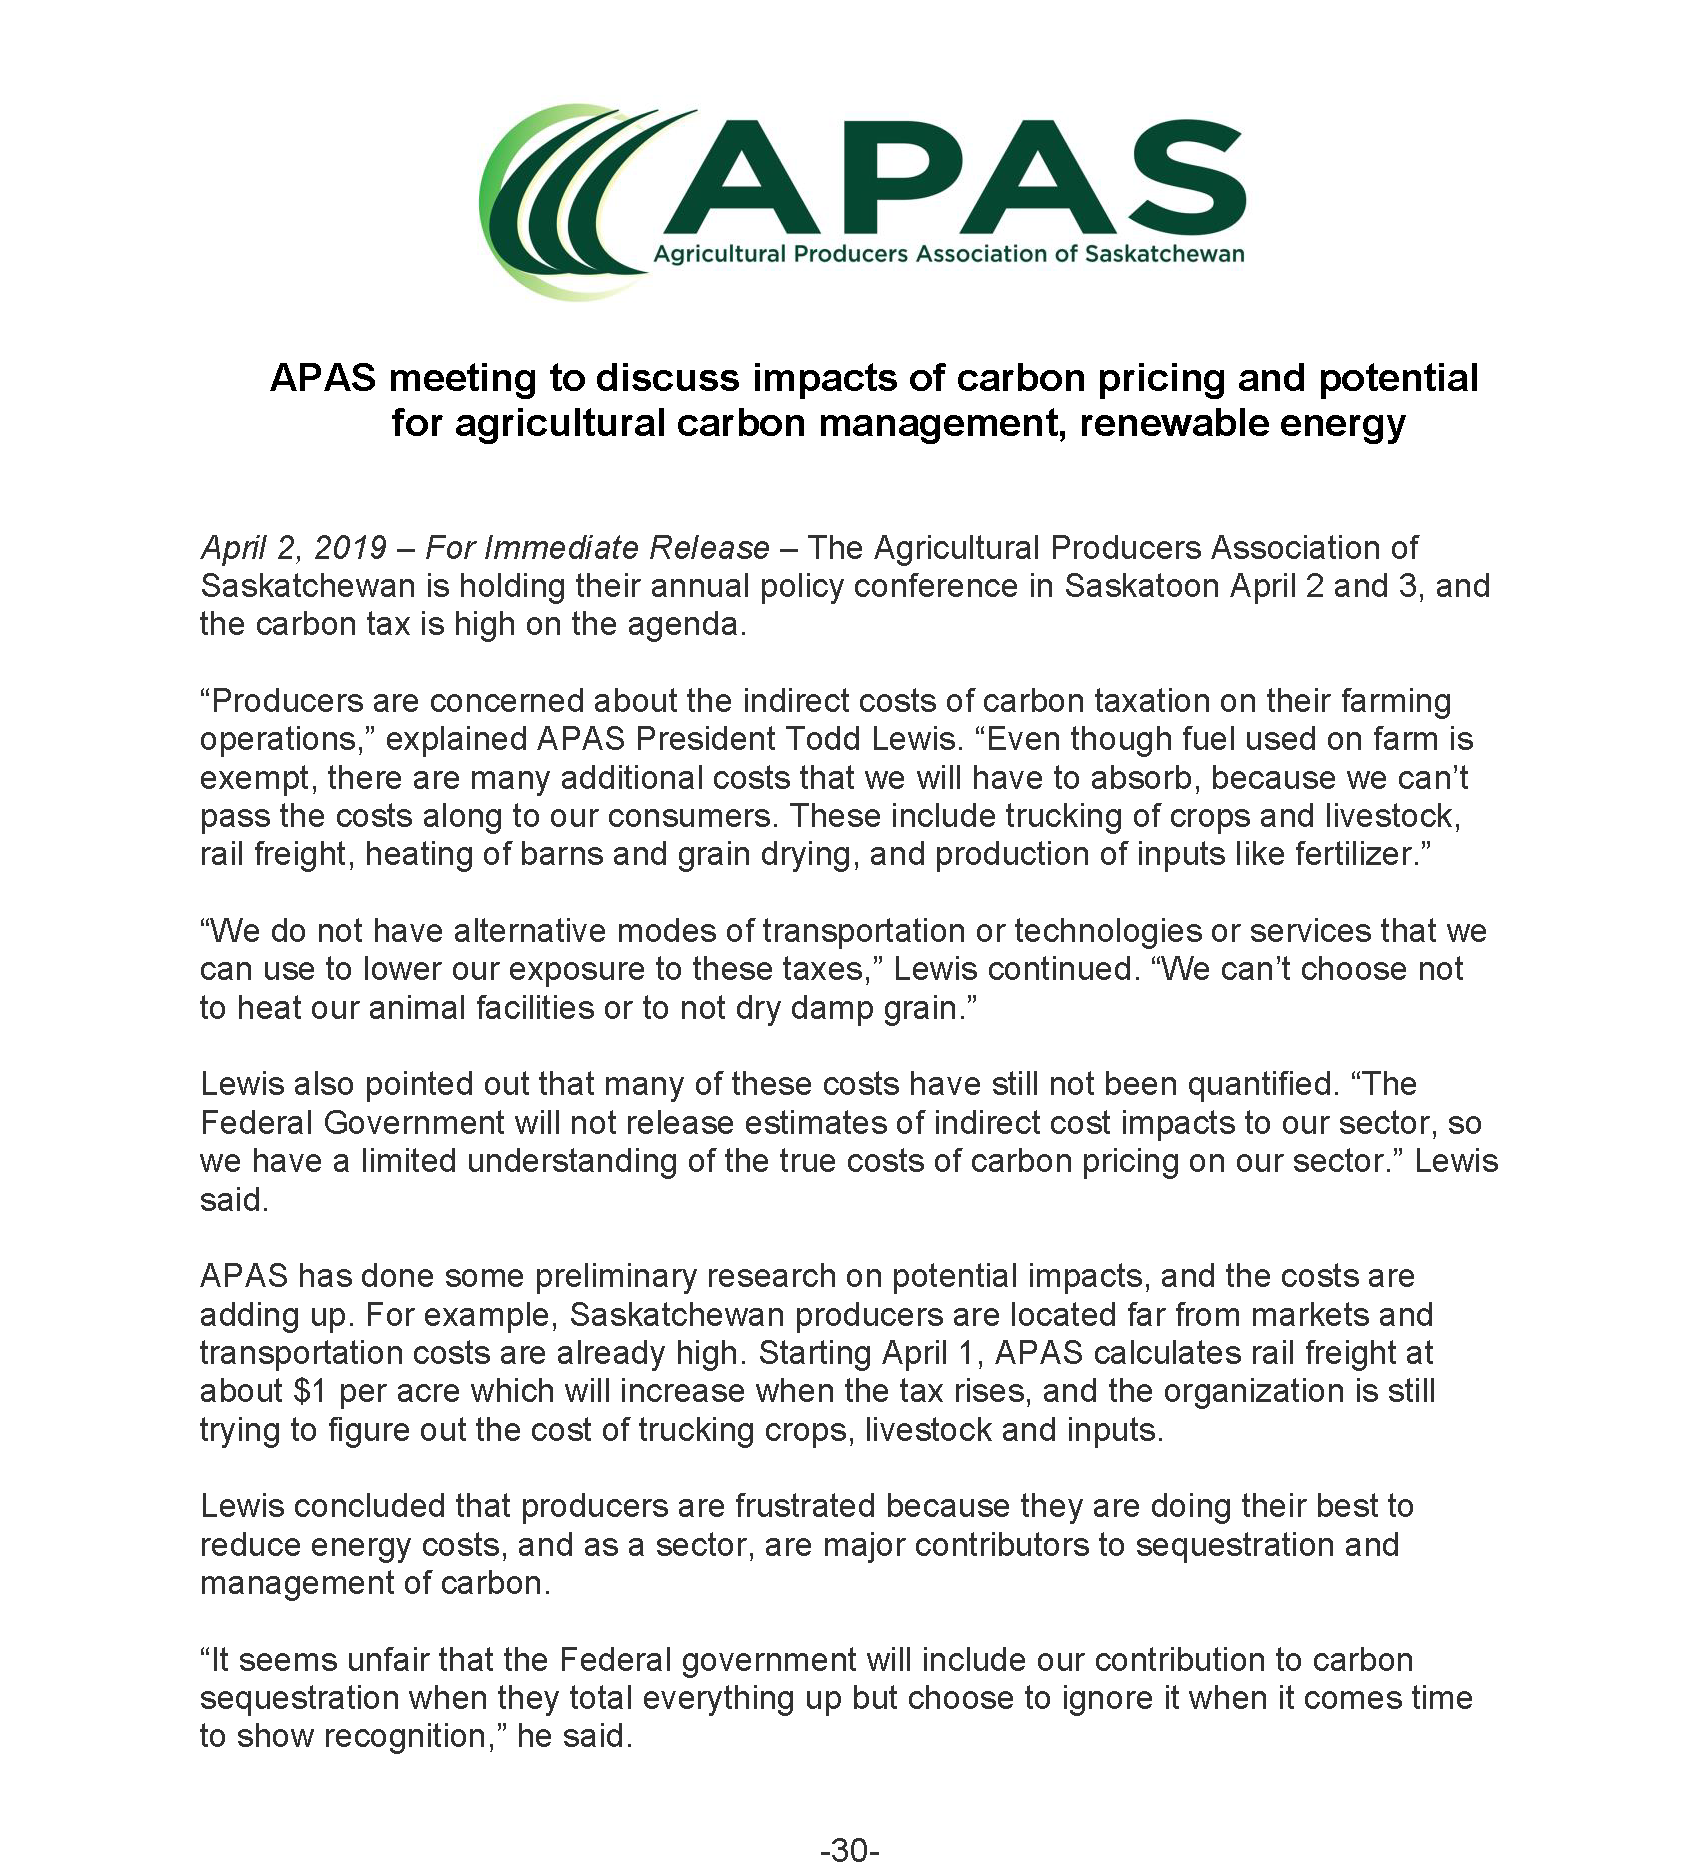 30ba2e9f2d41f April 2, 2019 – For Immediate Release – The Agricultural Producers  Association of Saskatchewan is holding their annual policy conference in  Saskatoon April ...